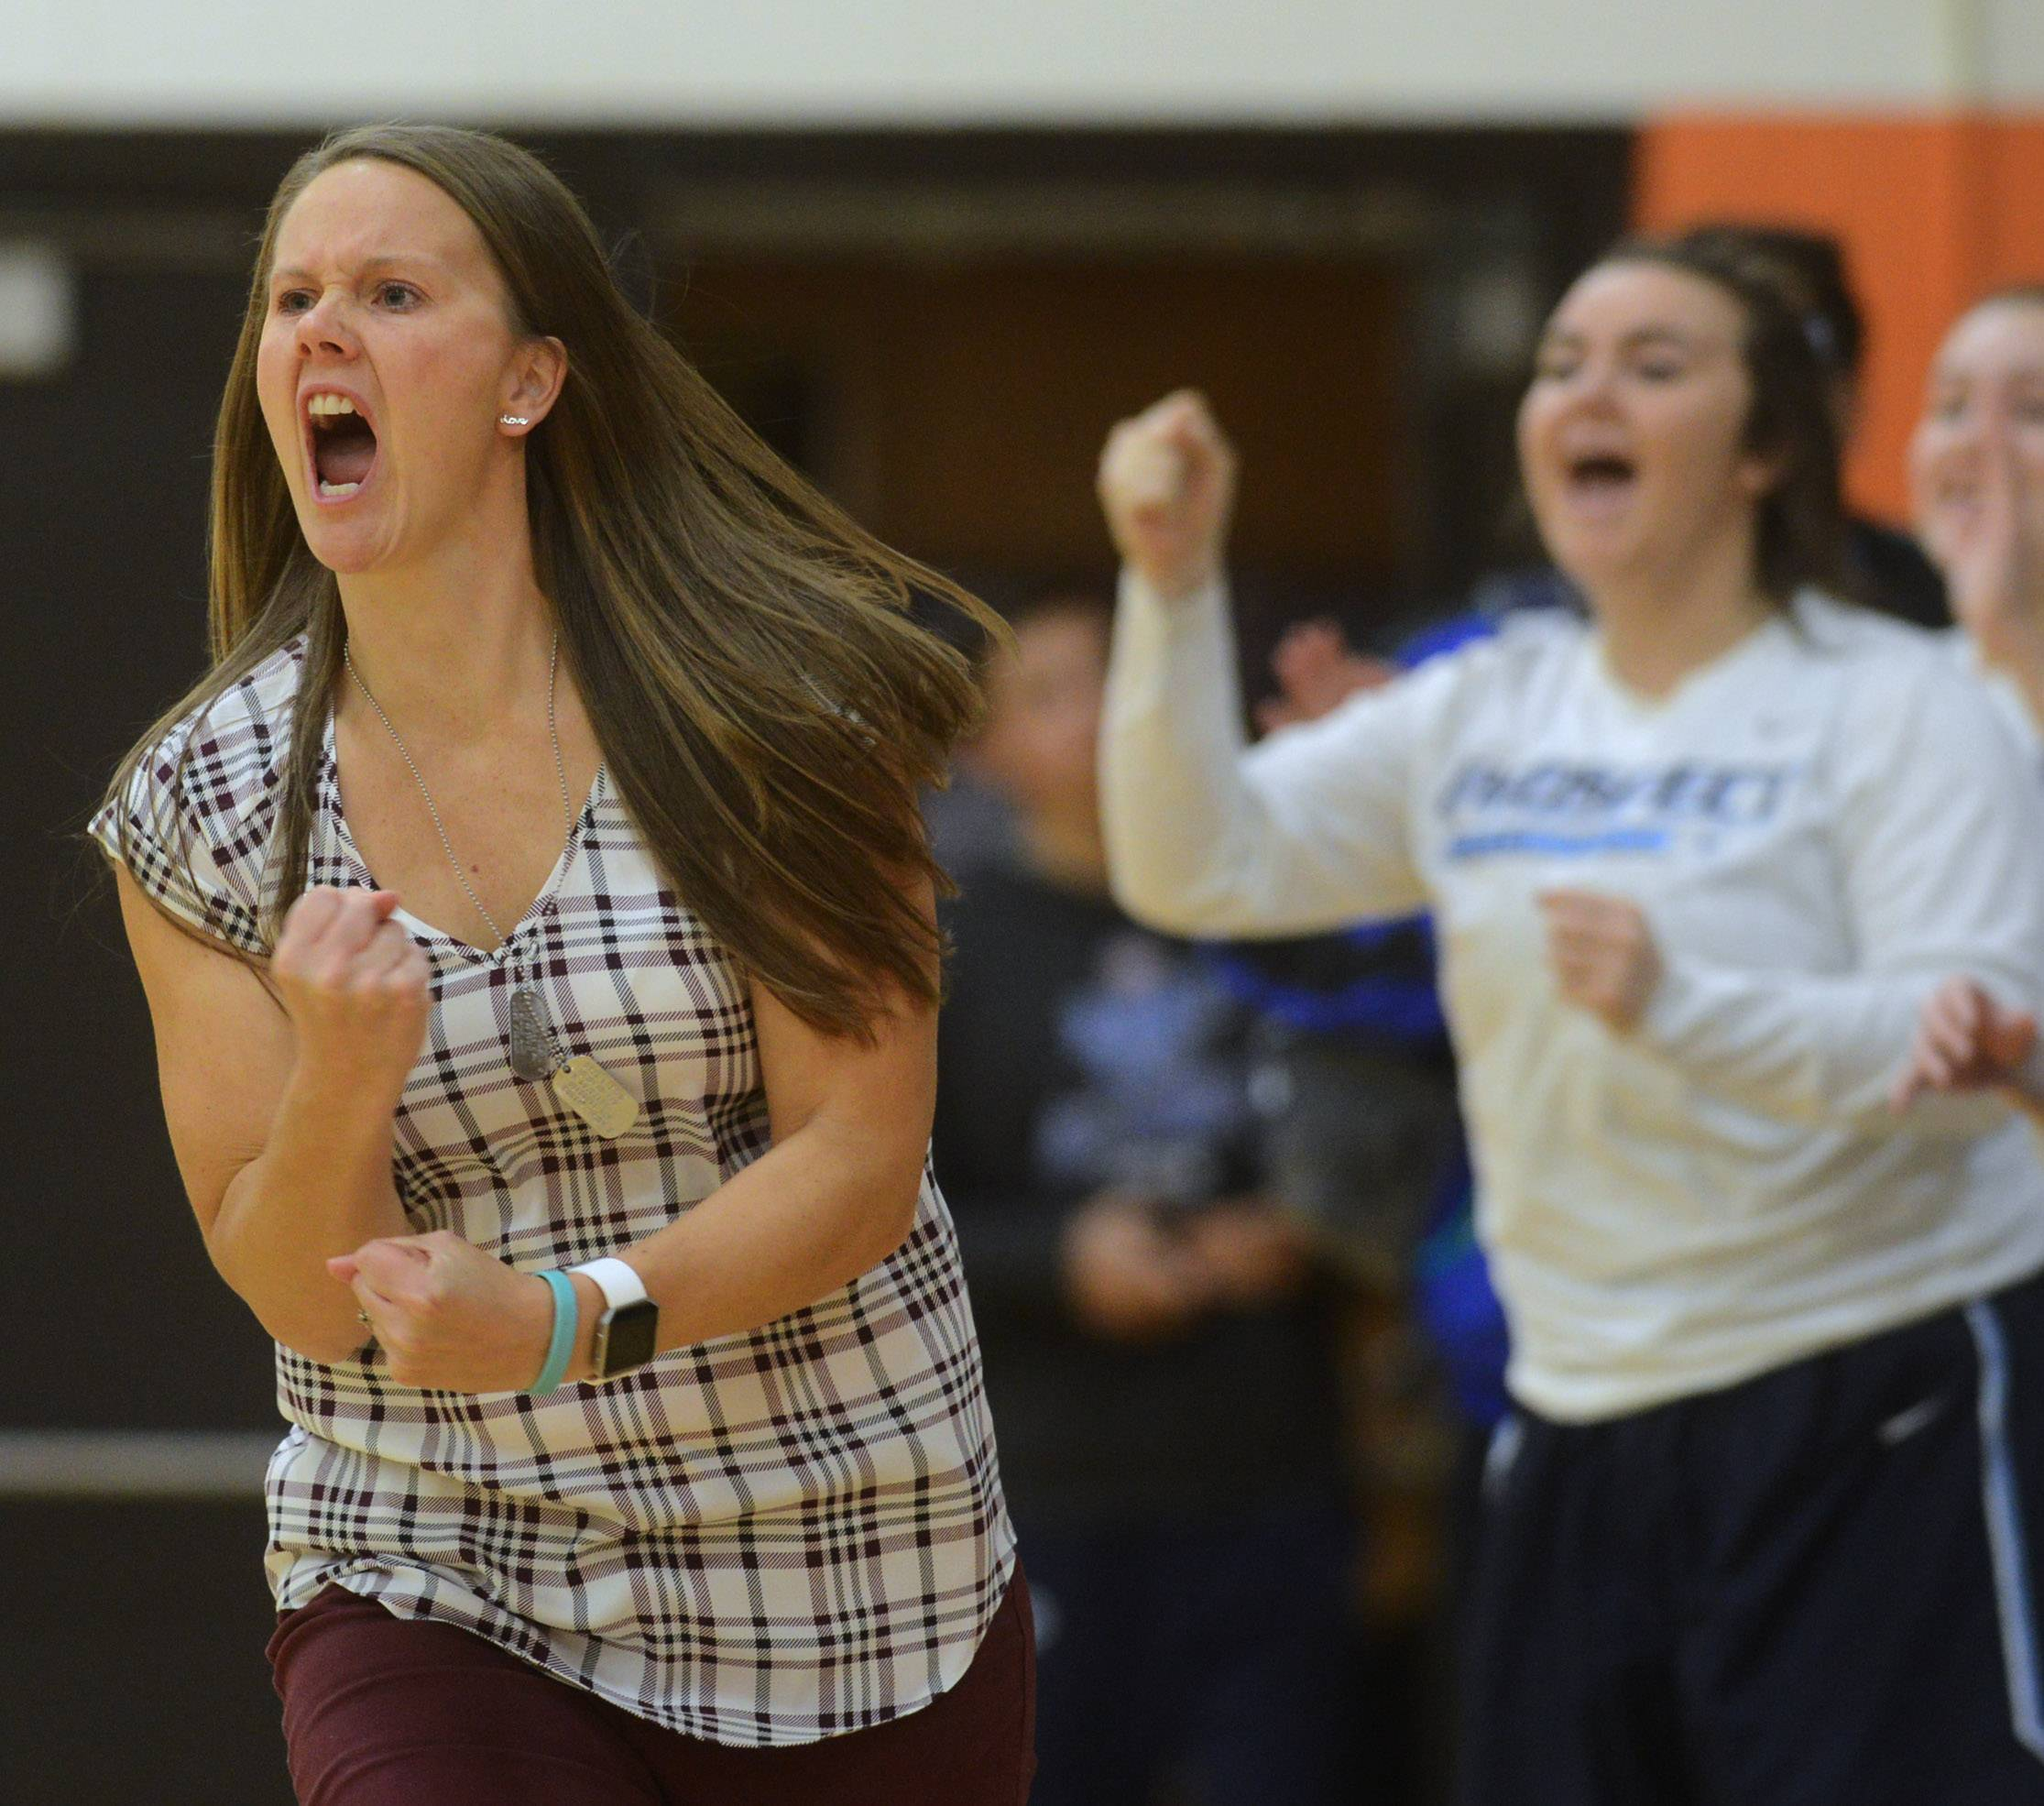 Prospect girls basketball coach Gabrielle Lovin cheers for her team during Friday's game against Hersey.